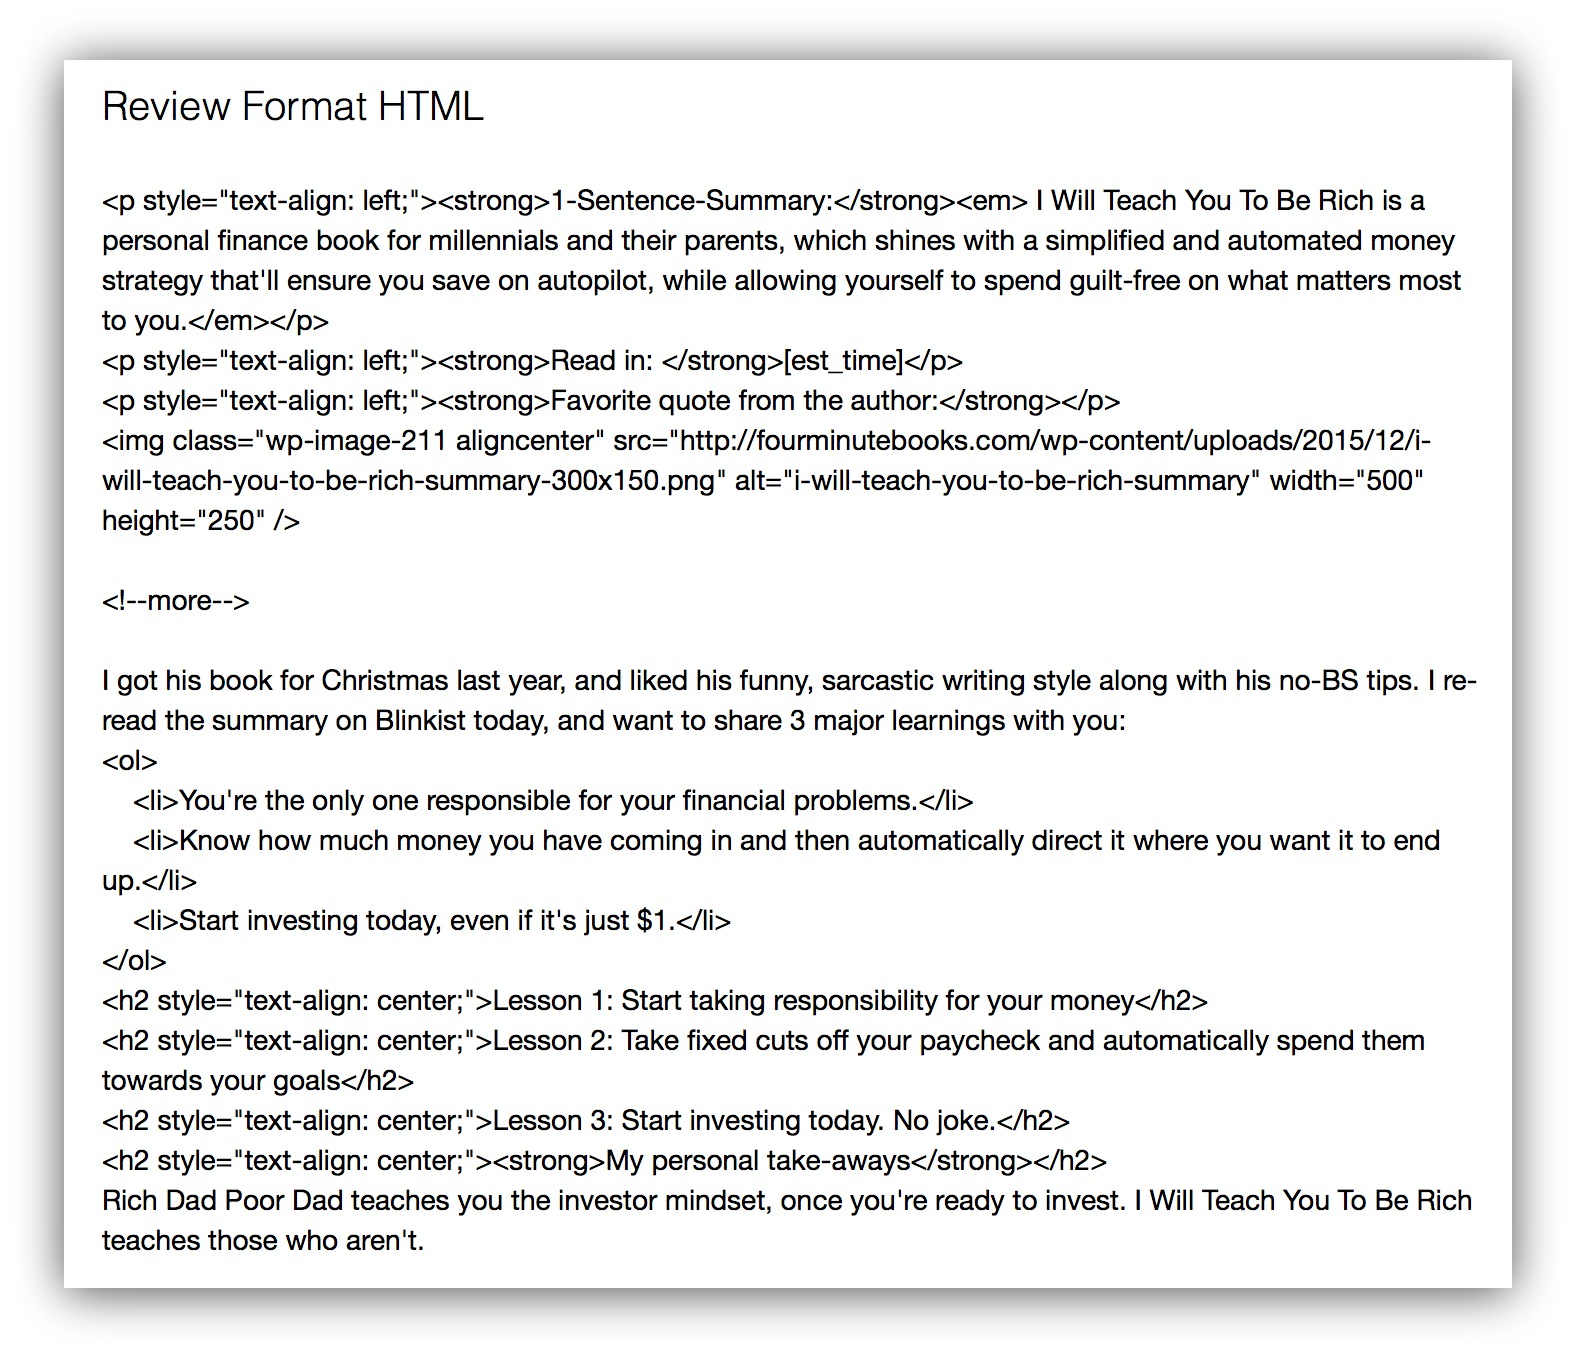 review format html